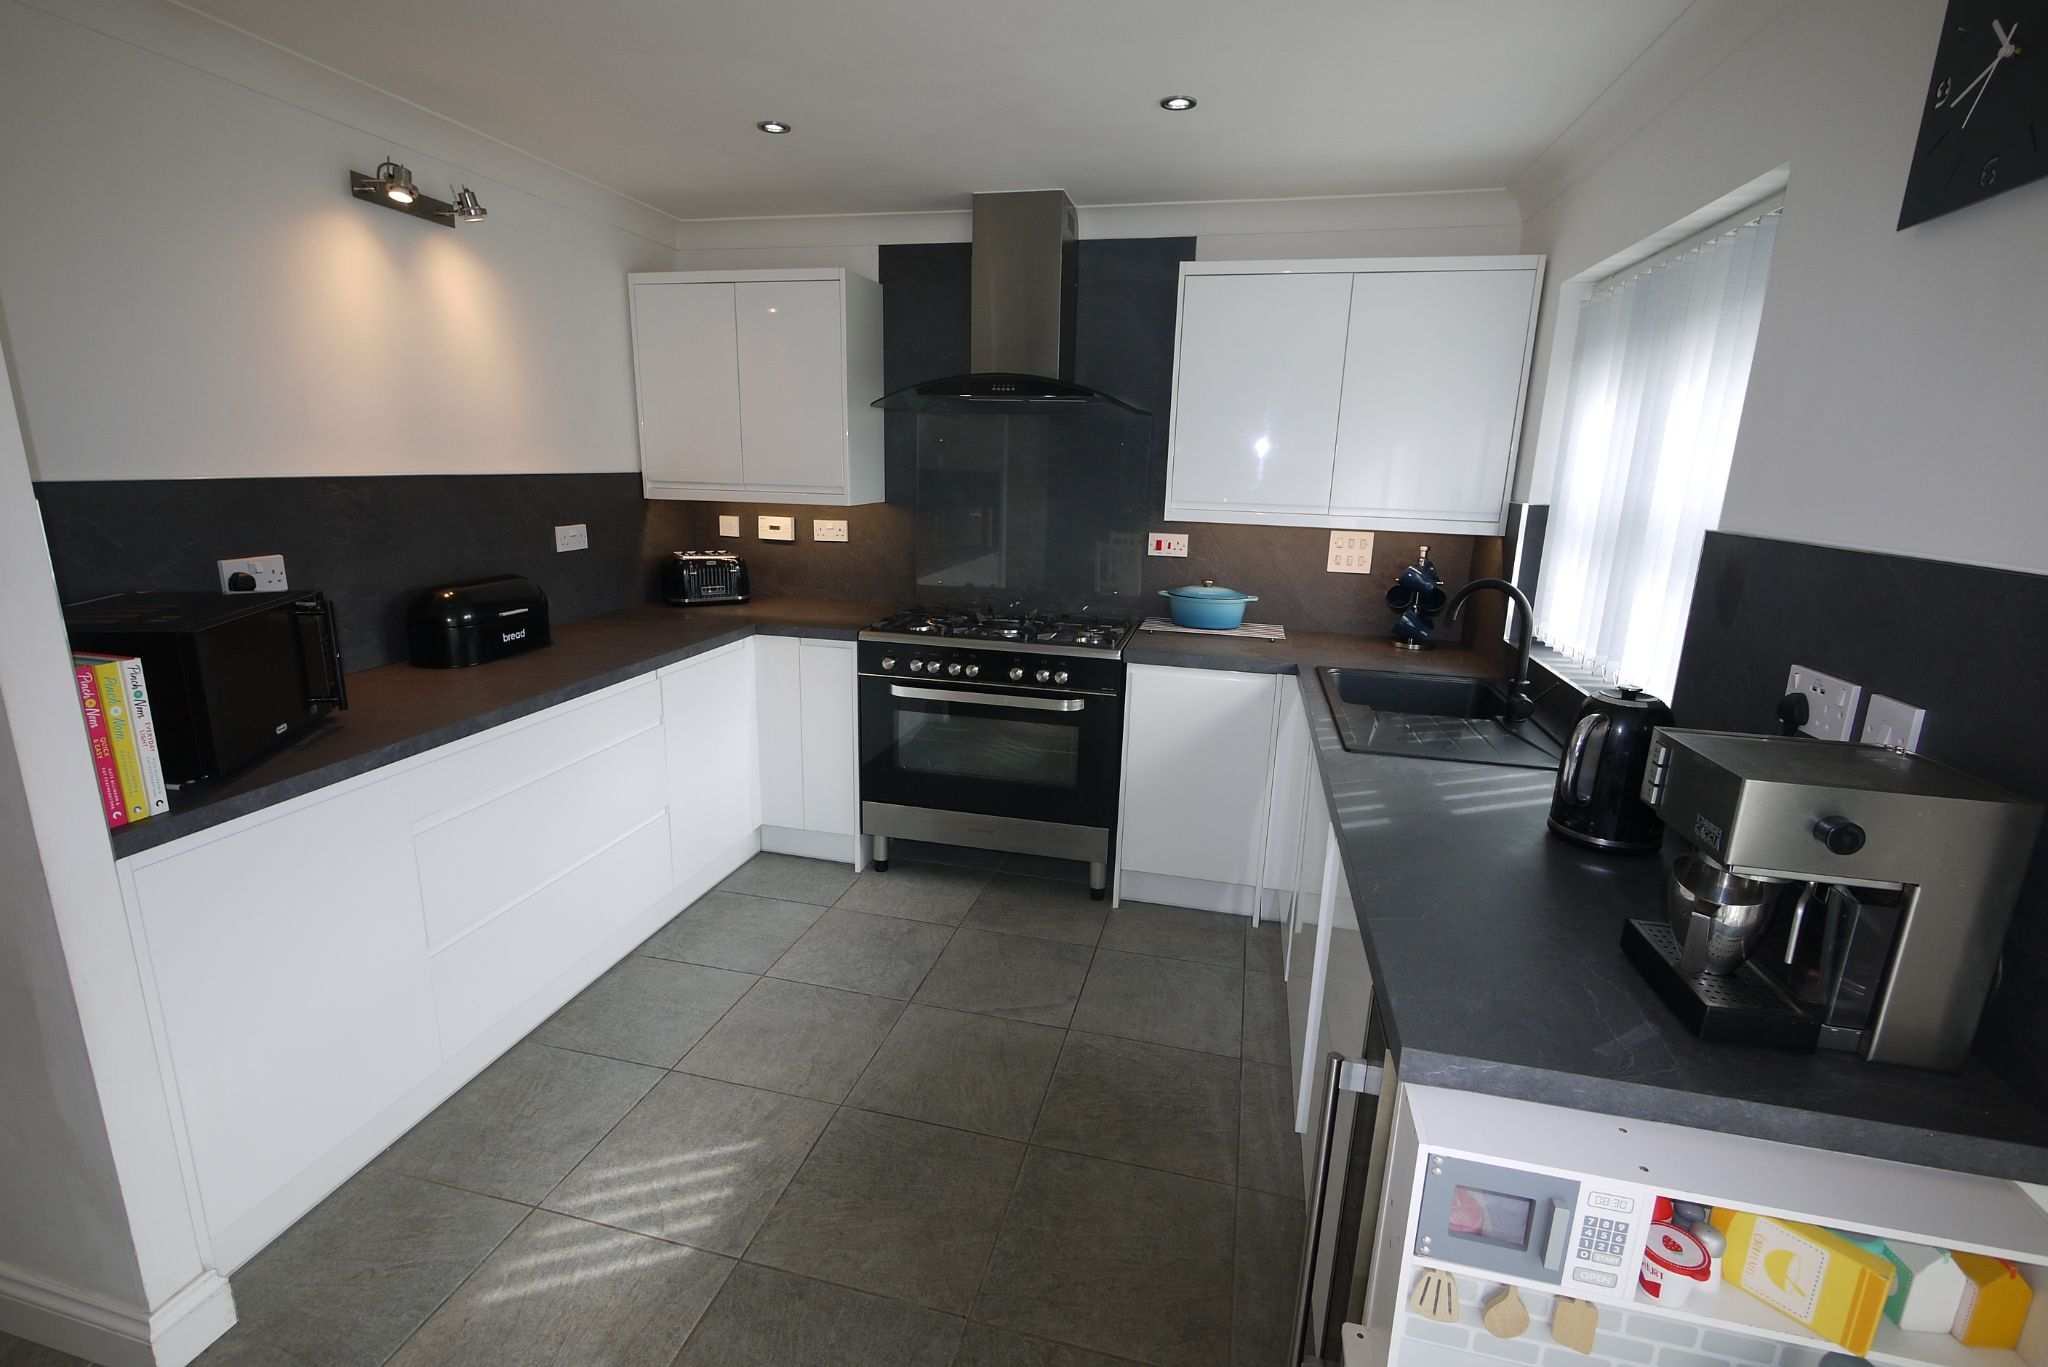 4 bedroom town house SSTC in Brighouse - Kitchen.